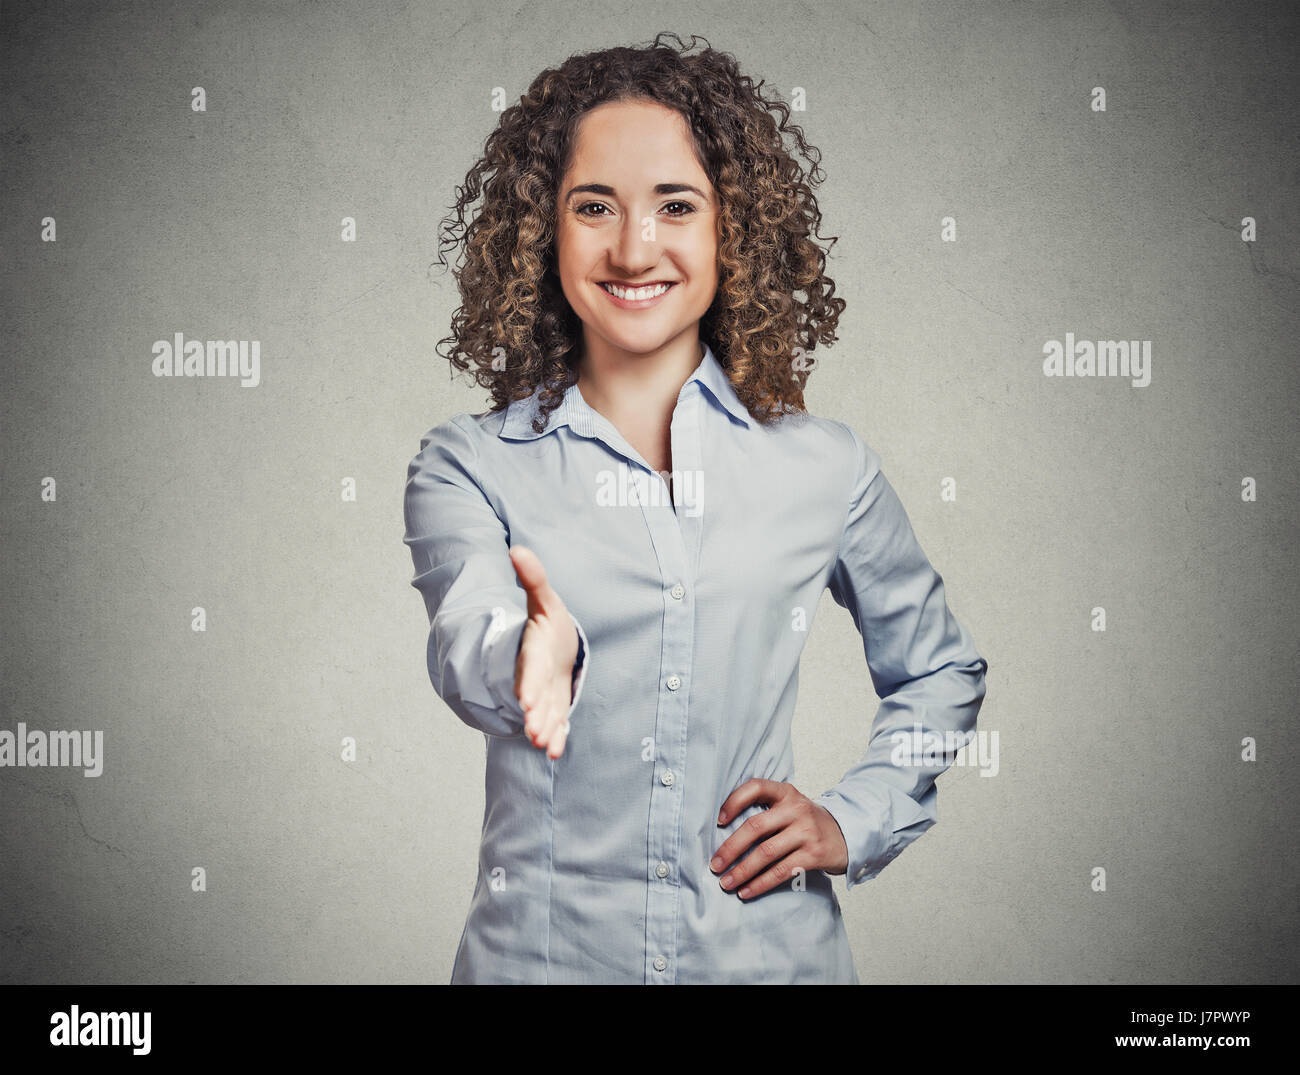 Closeup portrait, young, curly, brown hair, smiling woman, student, customer service agent giving you handshake - Stock Image